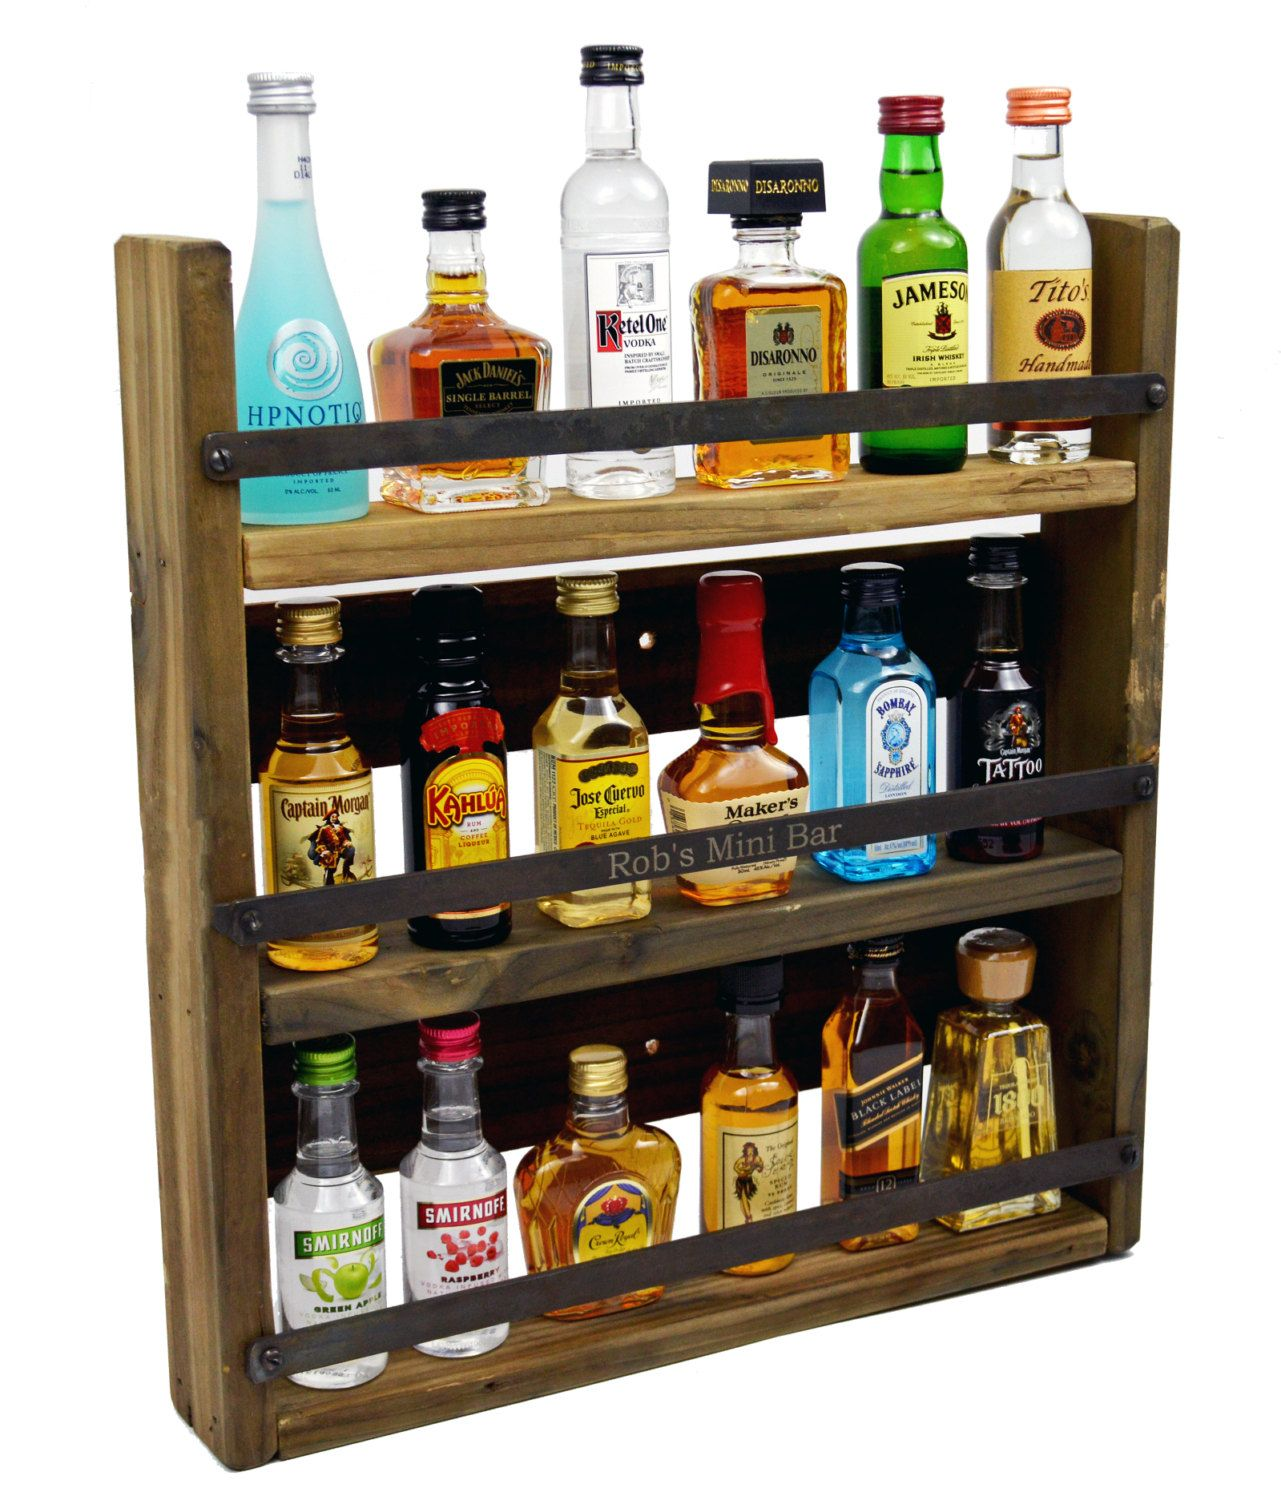 We Found A Mini Bar That Holds Our Favorite Miniature Liquor Bottles Description From Etsy I Searched For This On Bing Images